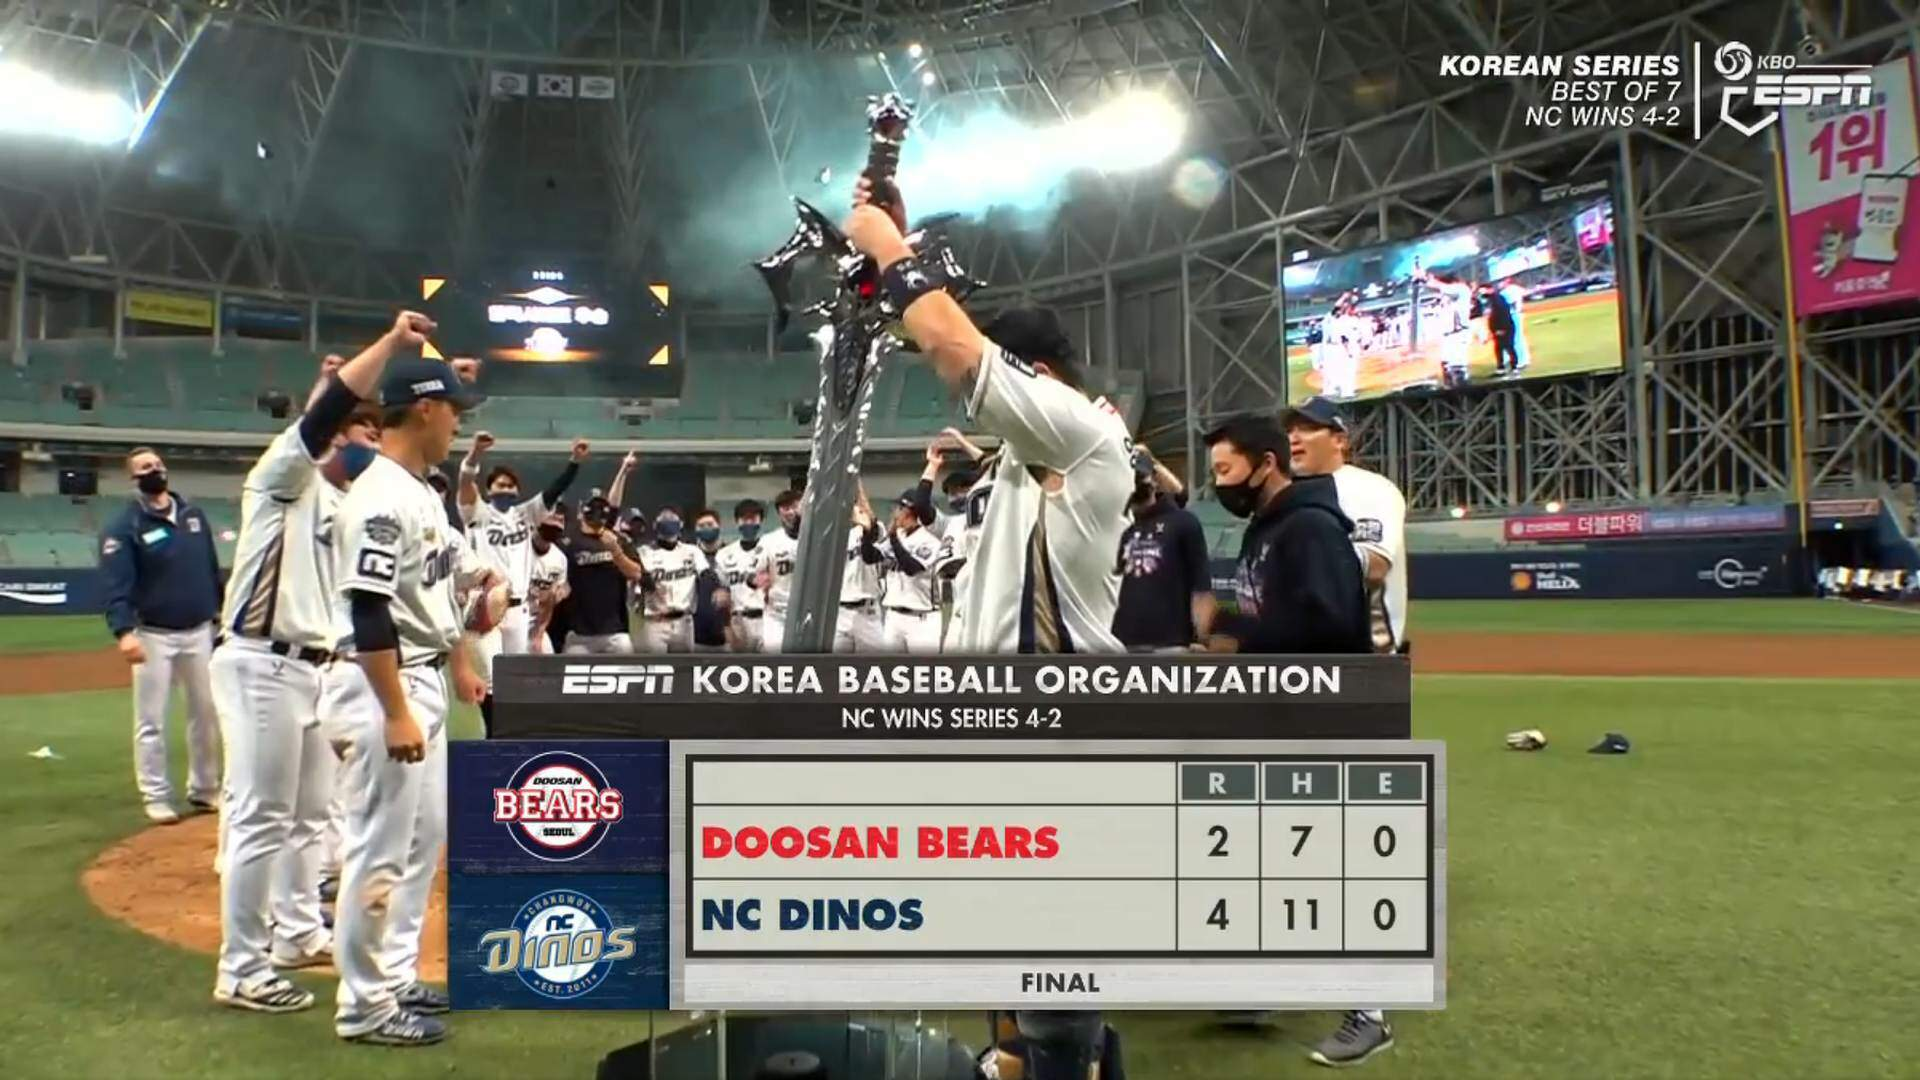 korean-baseball-series-video-game-sword-